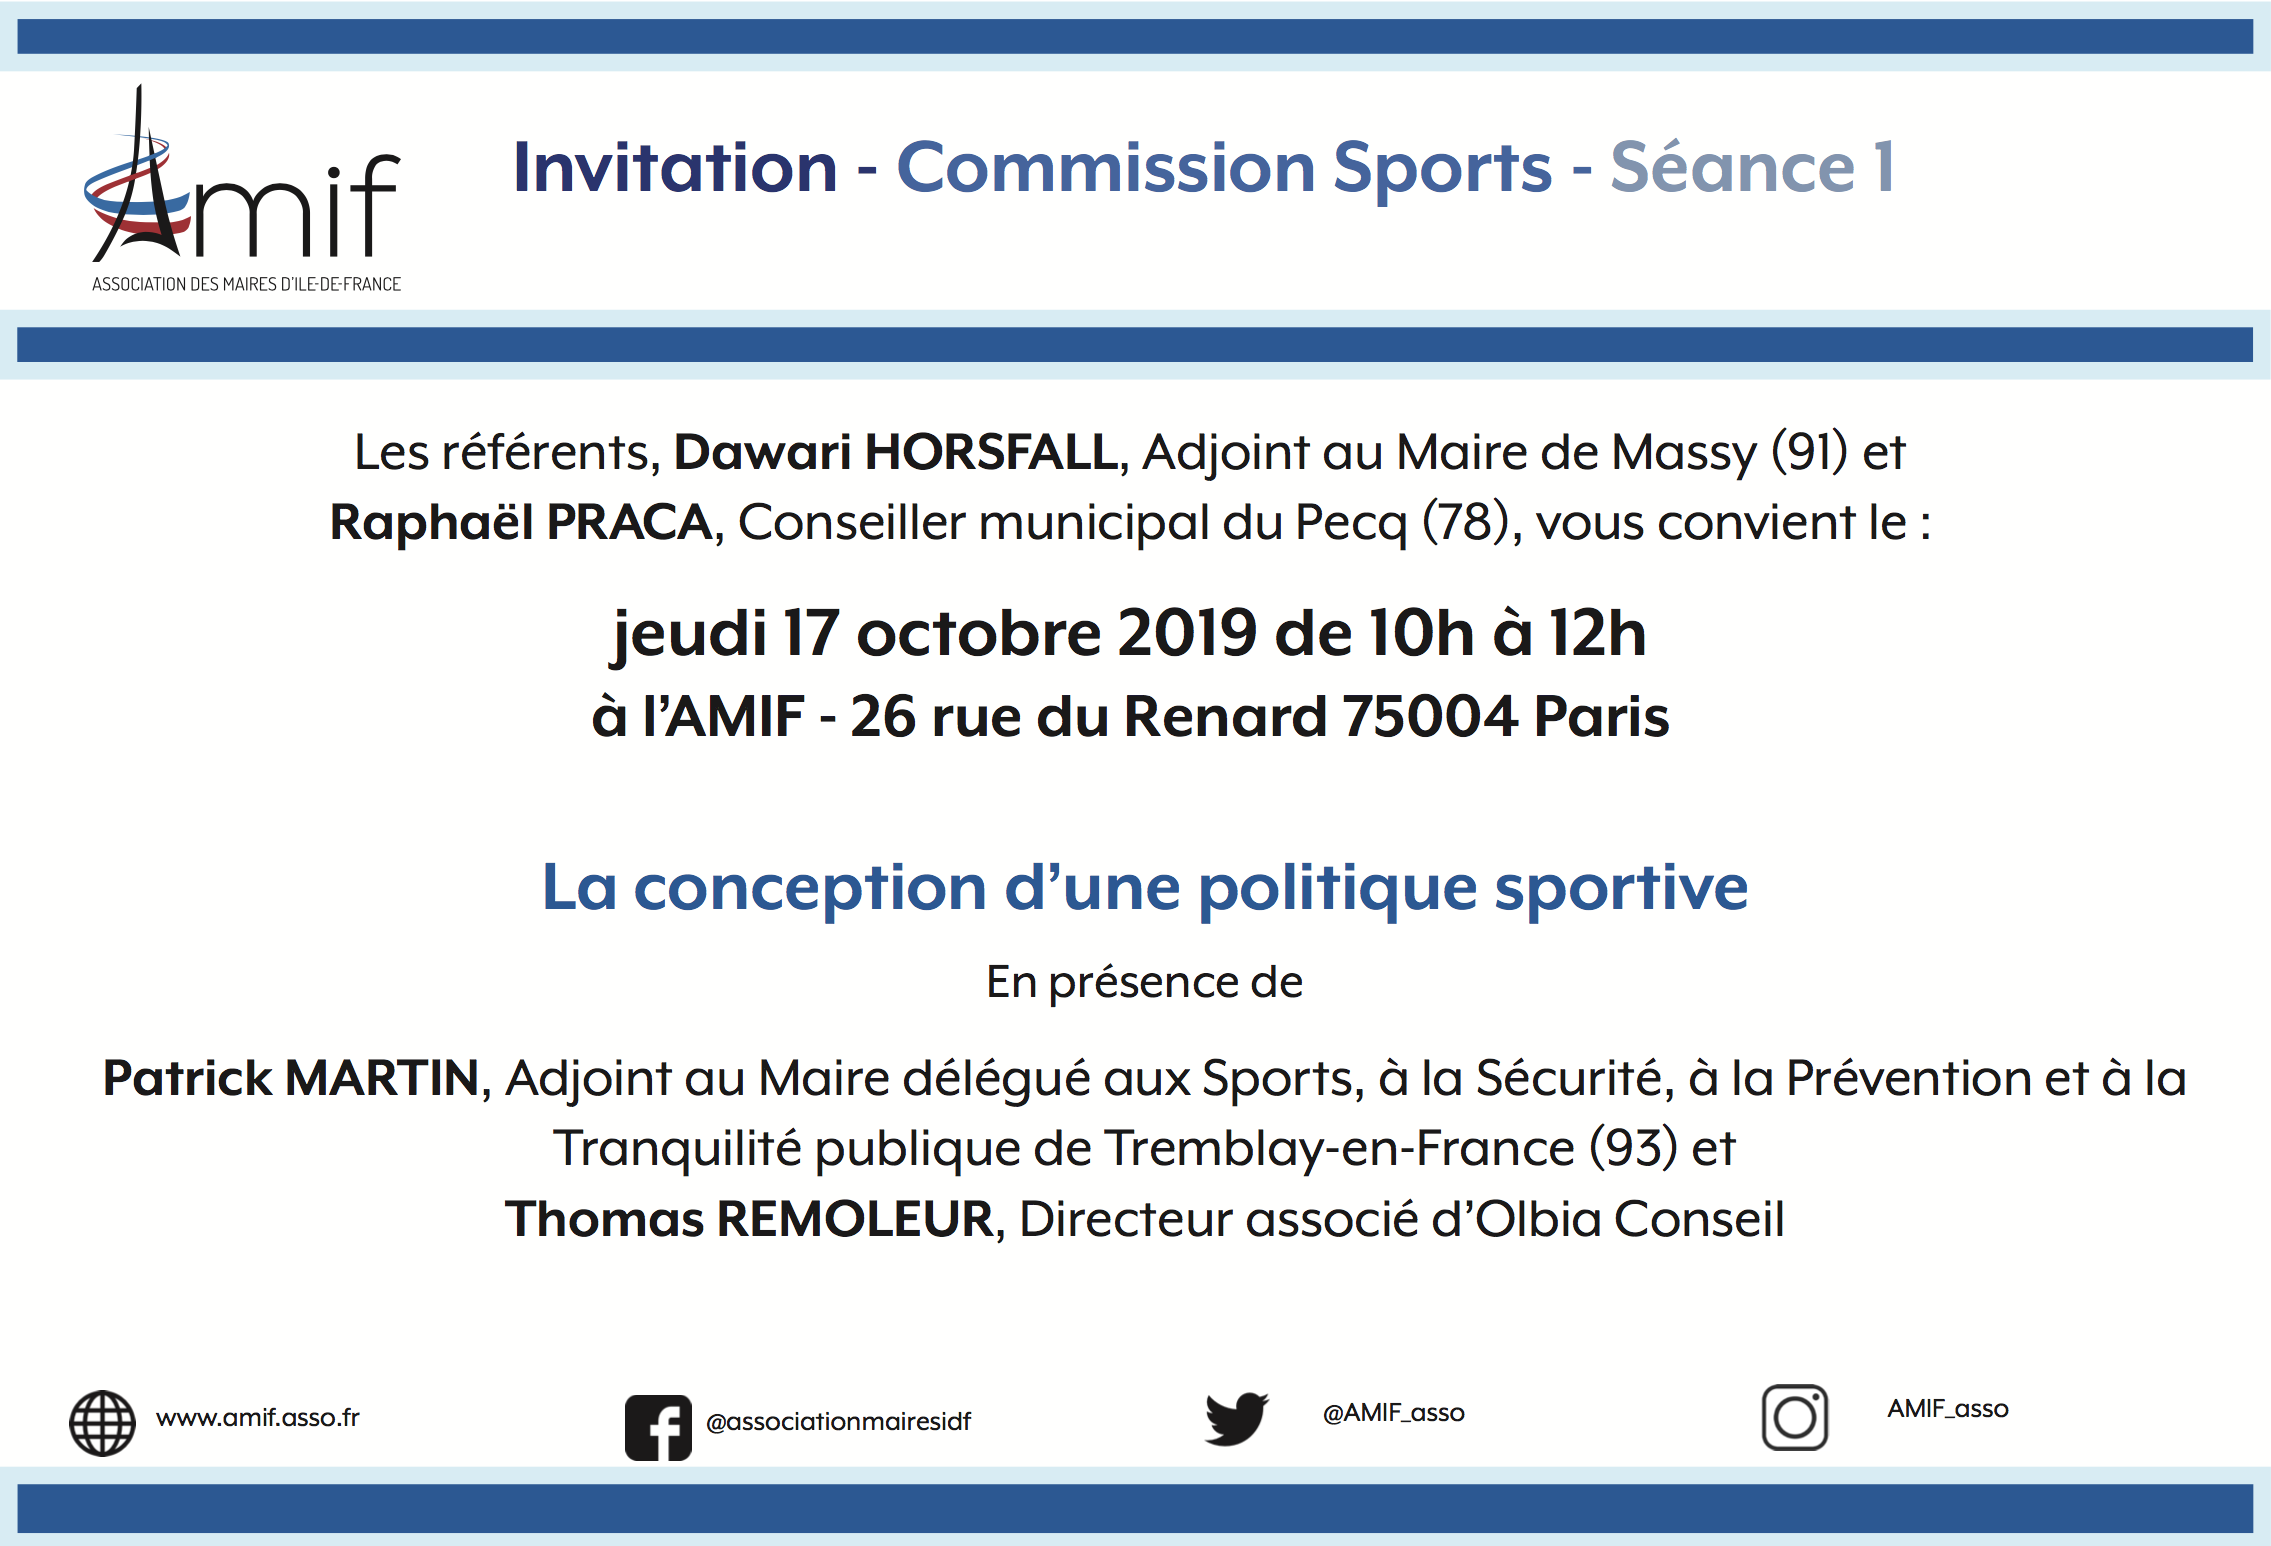 CommissionSportsSeance117octobre2019v1